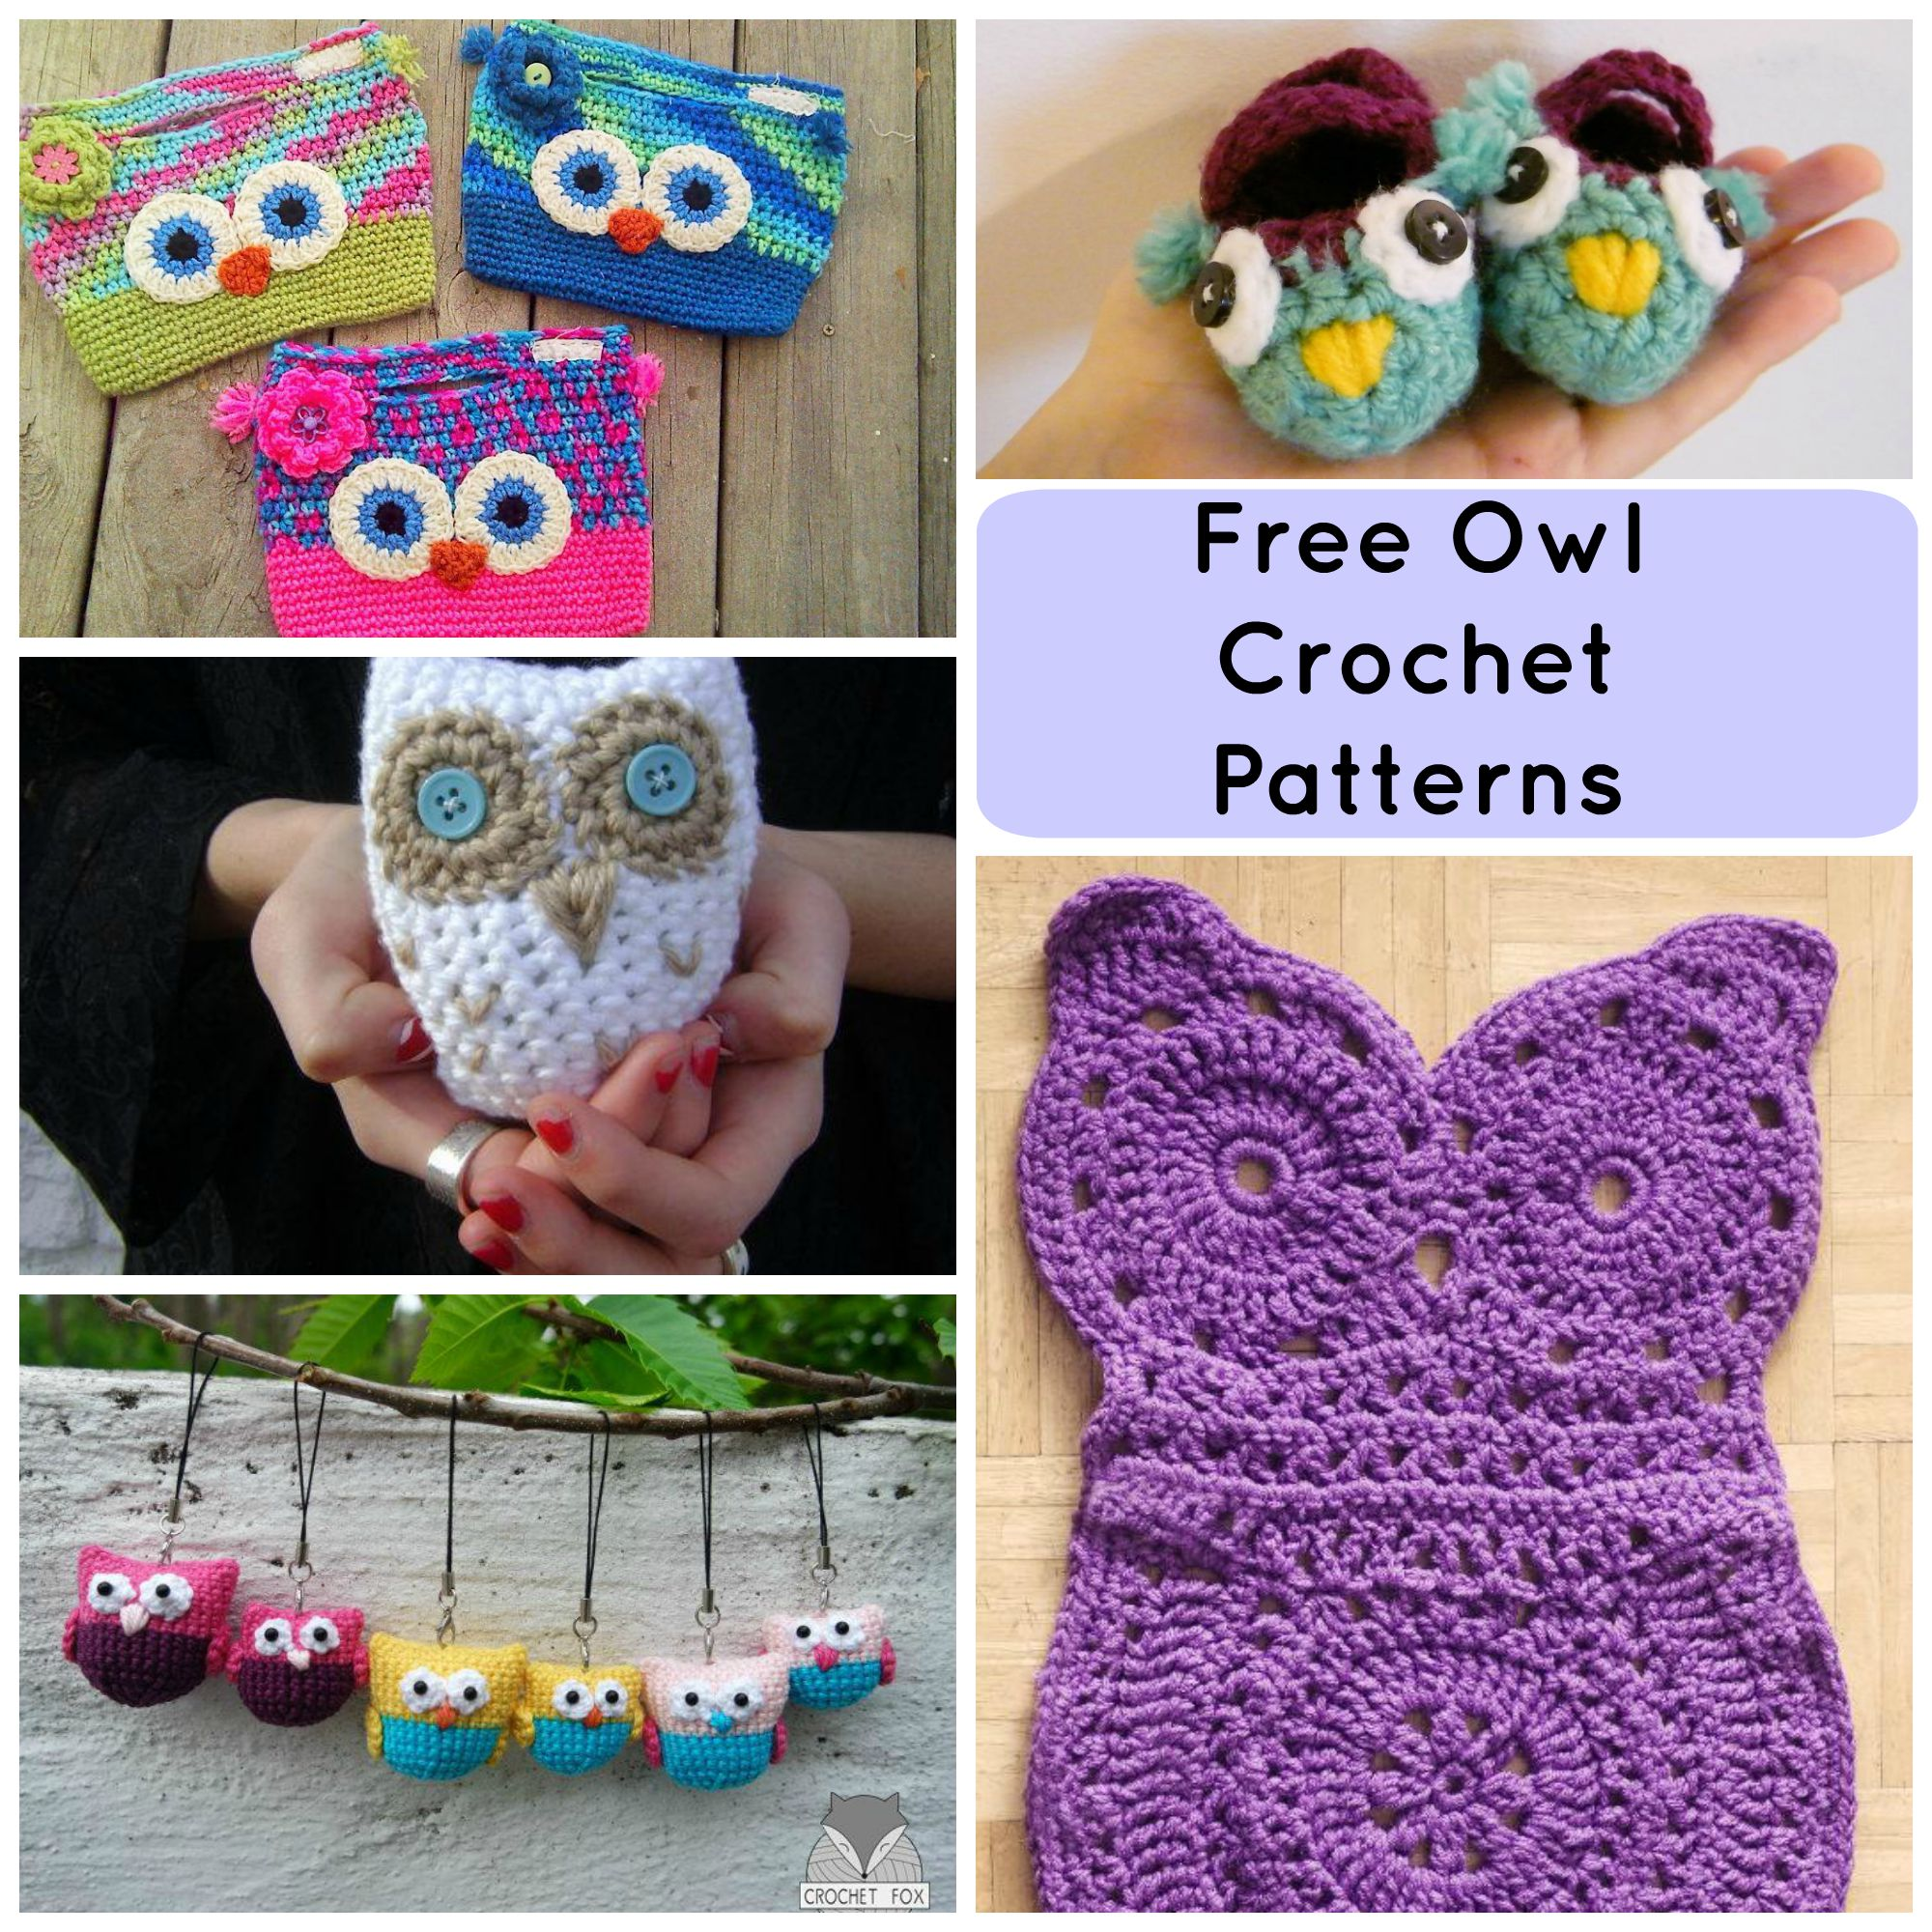 free crochet patterns 7 hoot-worthy free crochet owl patterns mljzacm